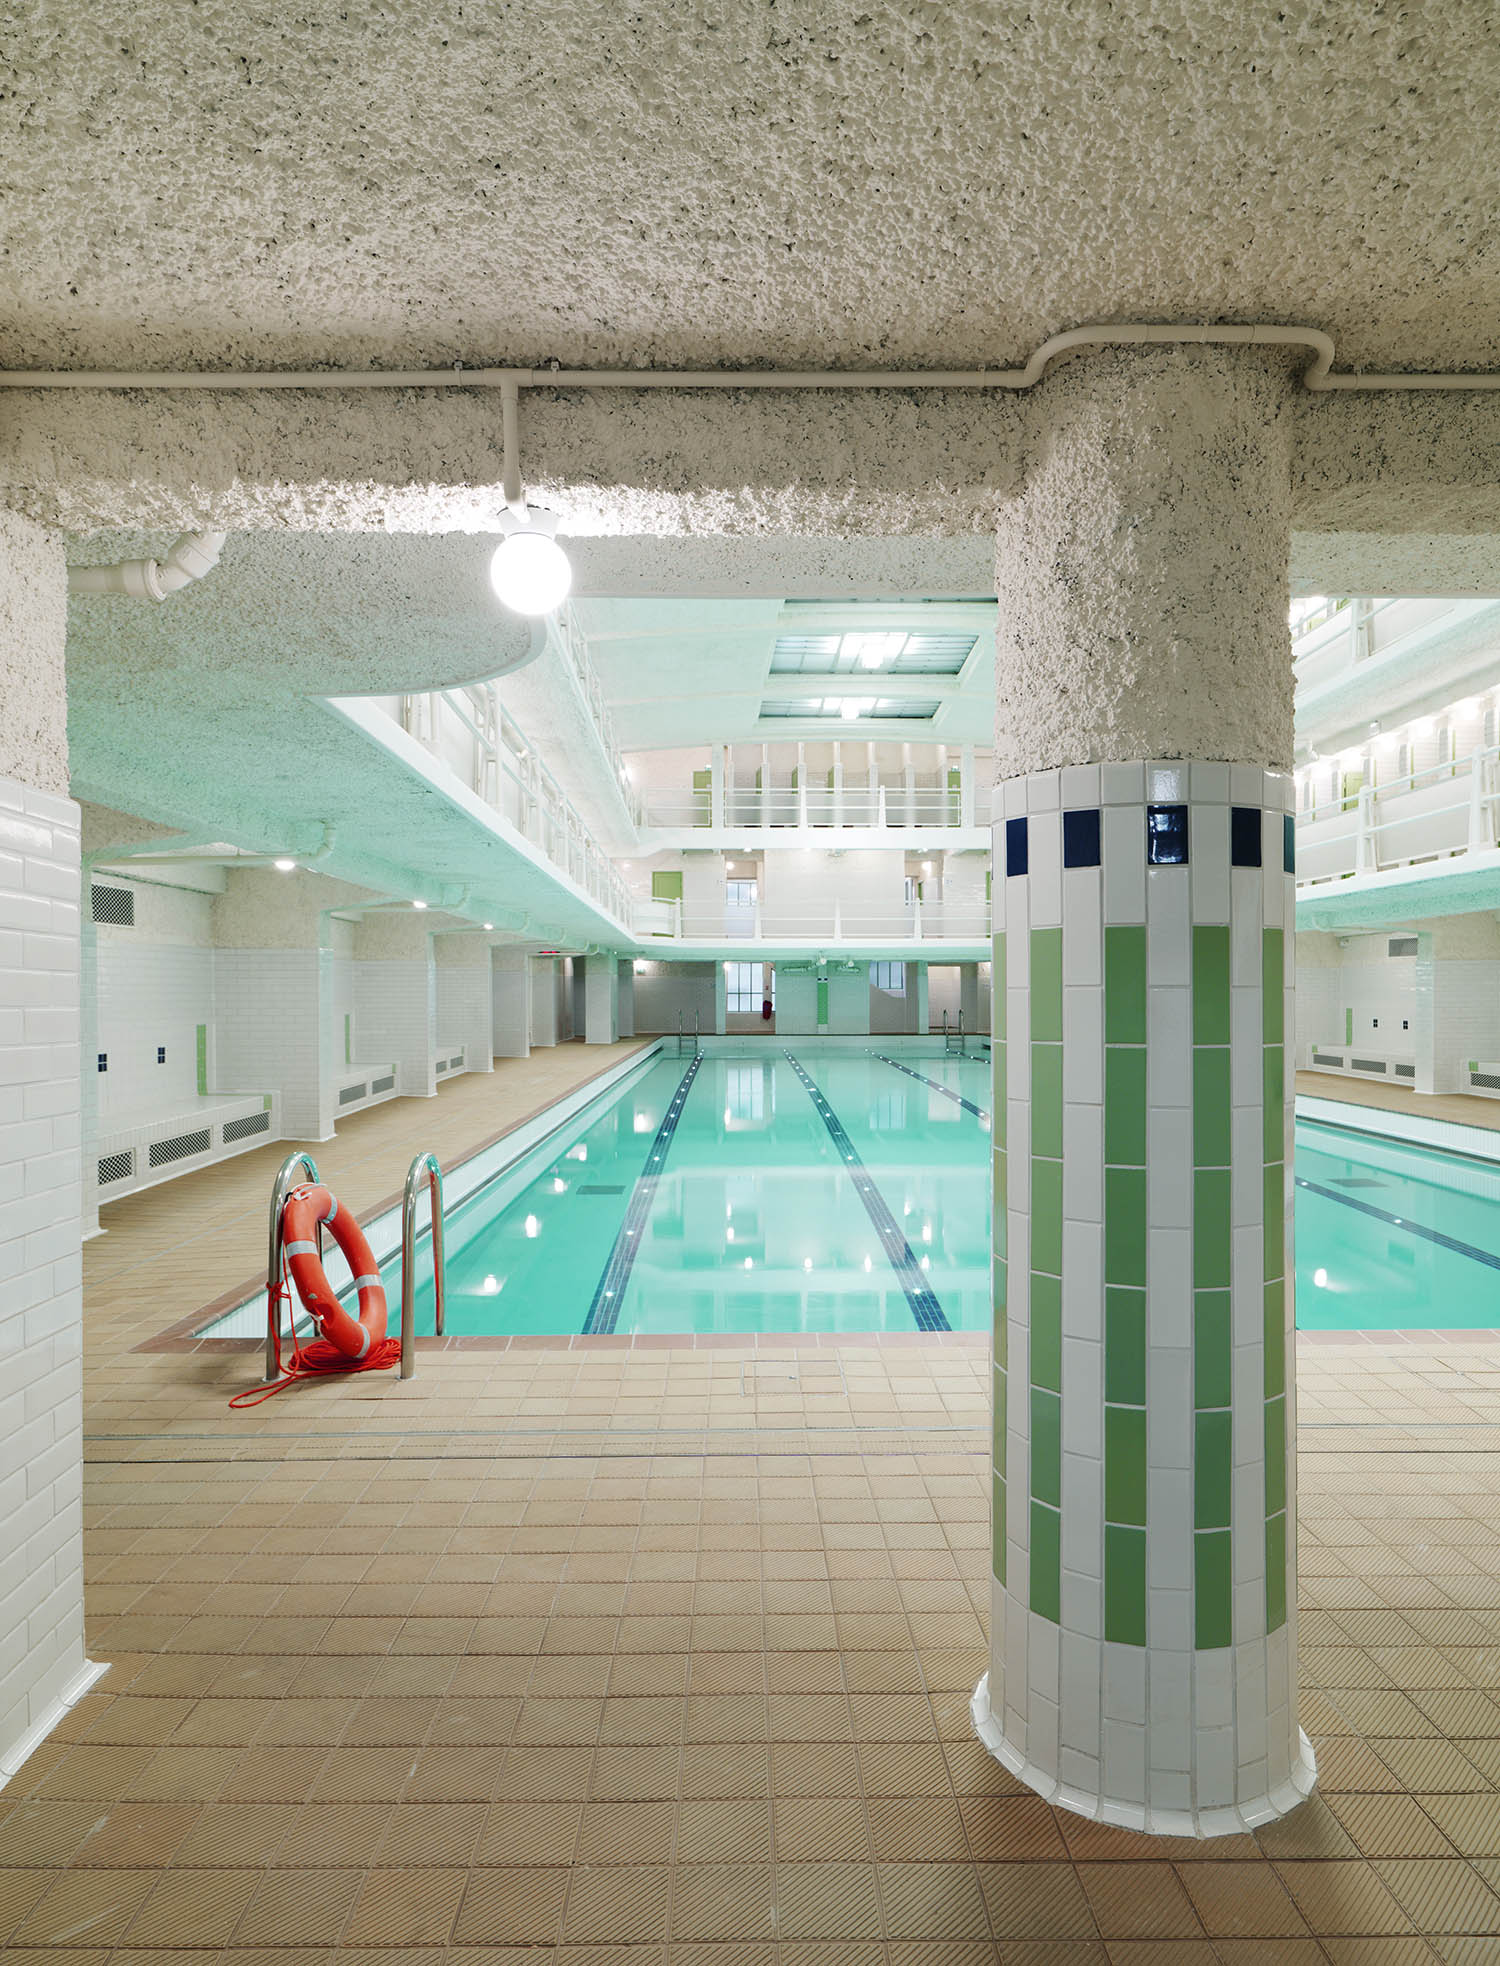 The Amiraux swimming pool after the renovation campaign, 2017 Cyrille Weiner